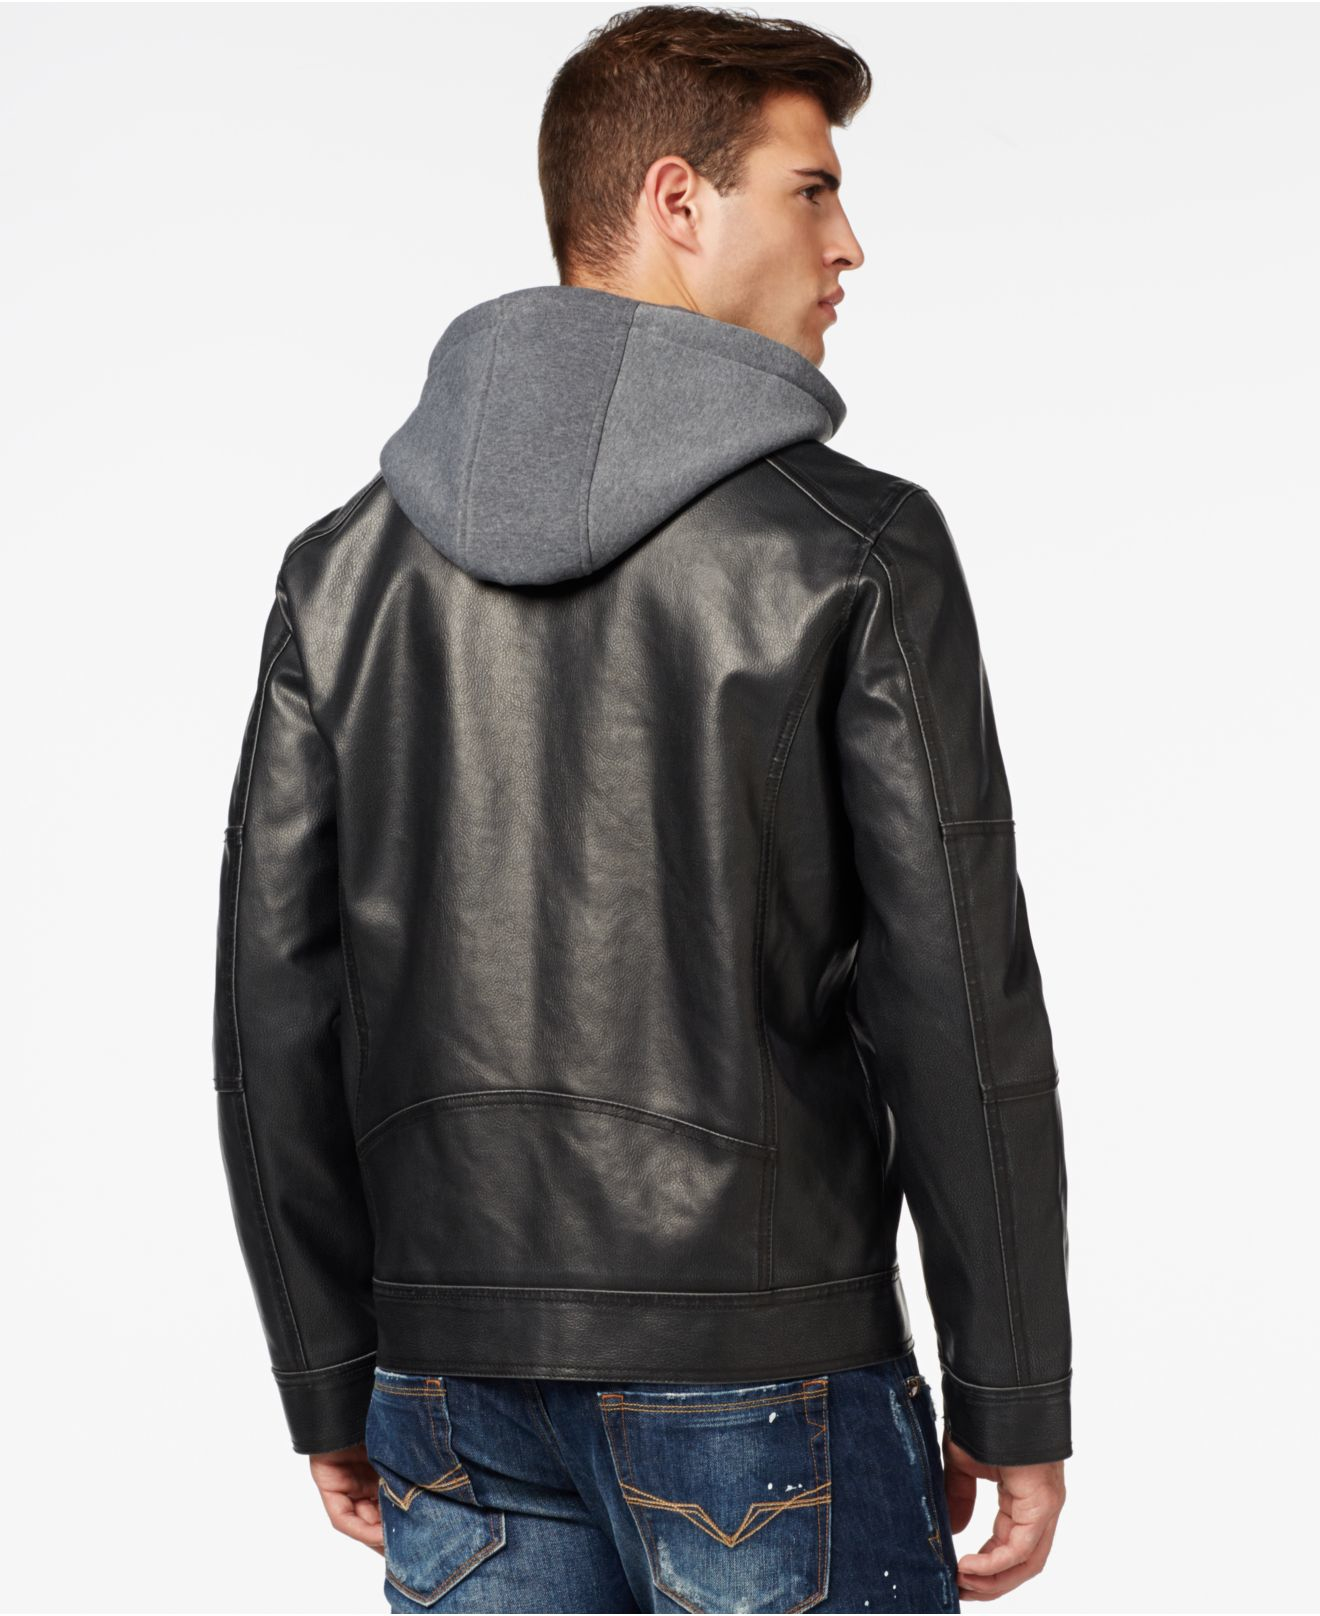 Guess Faux-leather Moto Jacket in Black for Men - Lyst